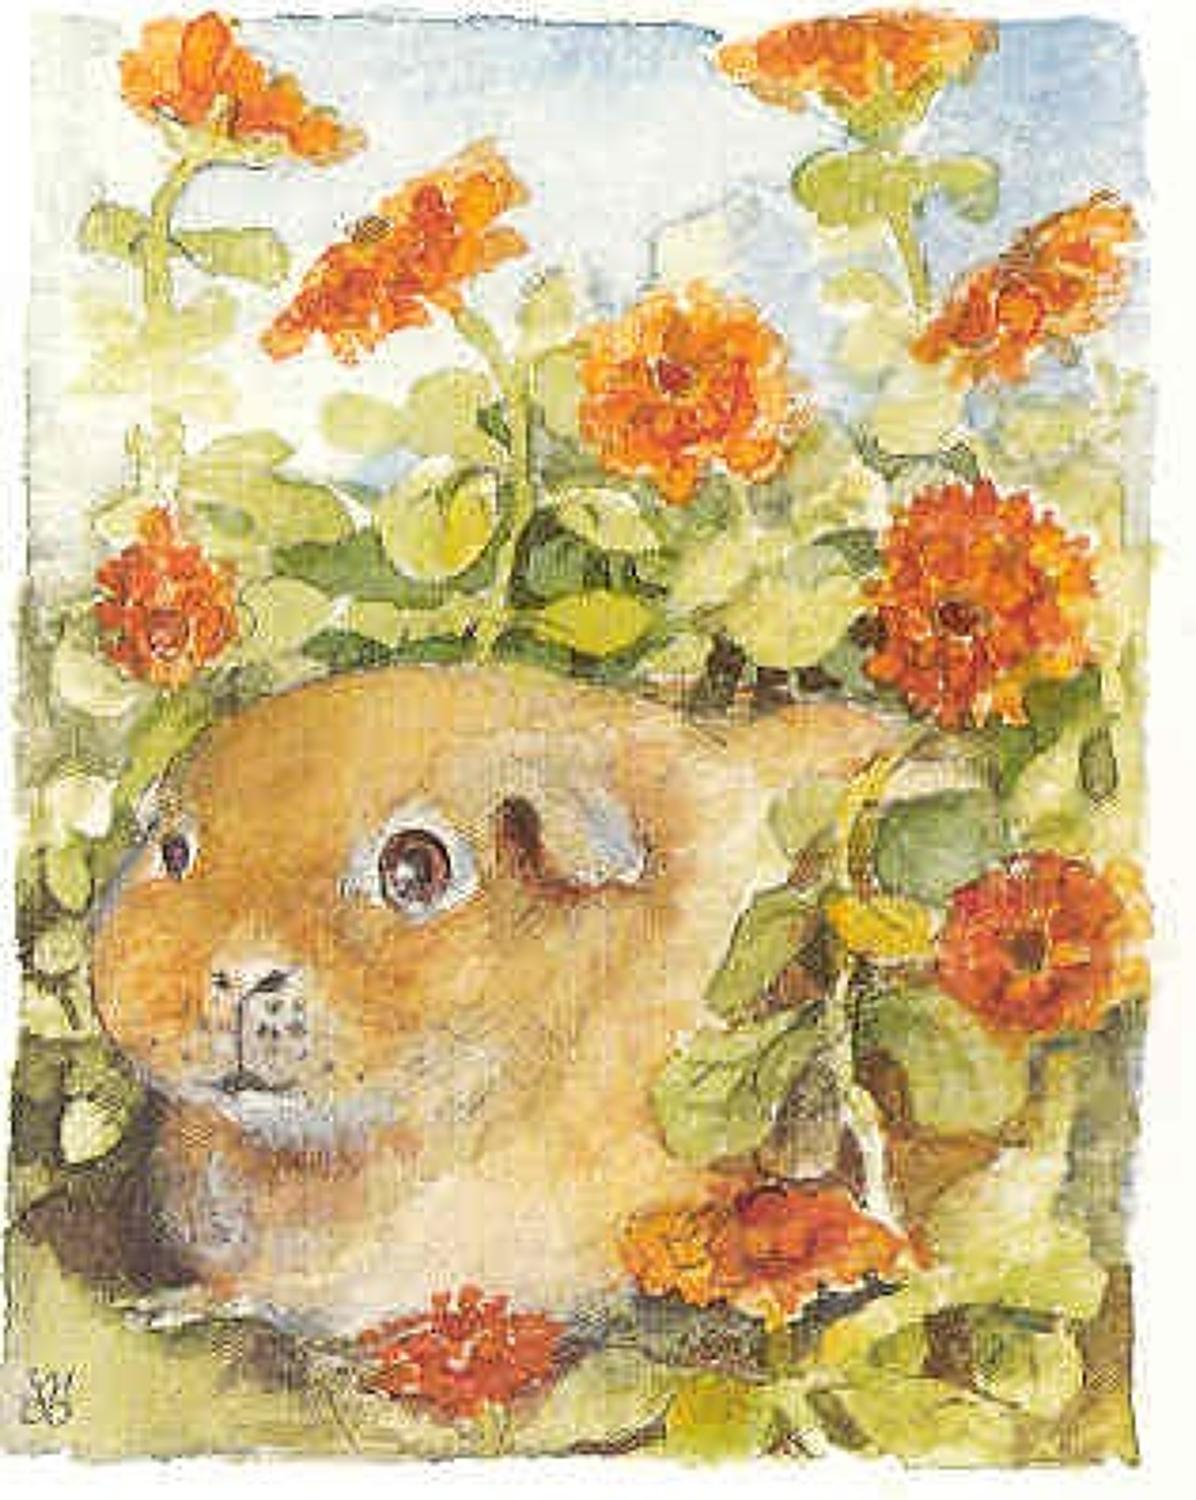 Guinea pig and marigolds